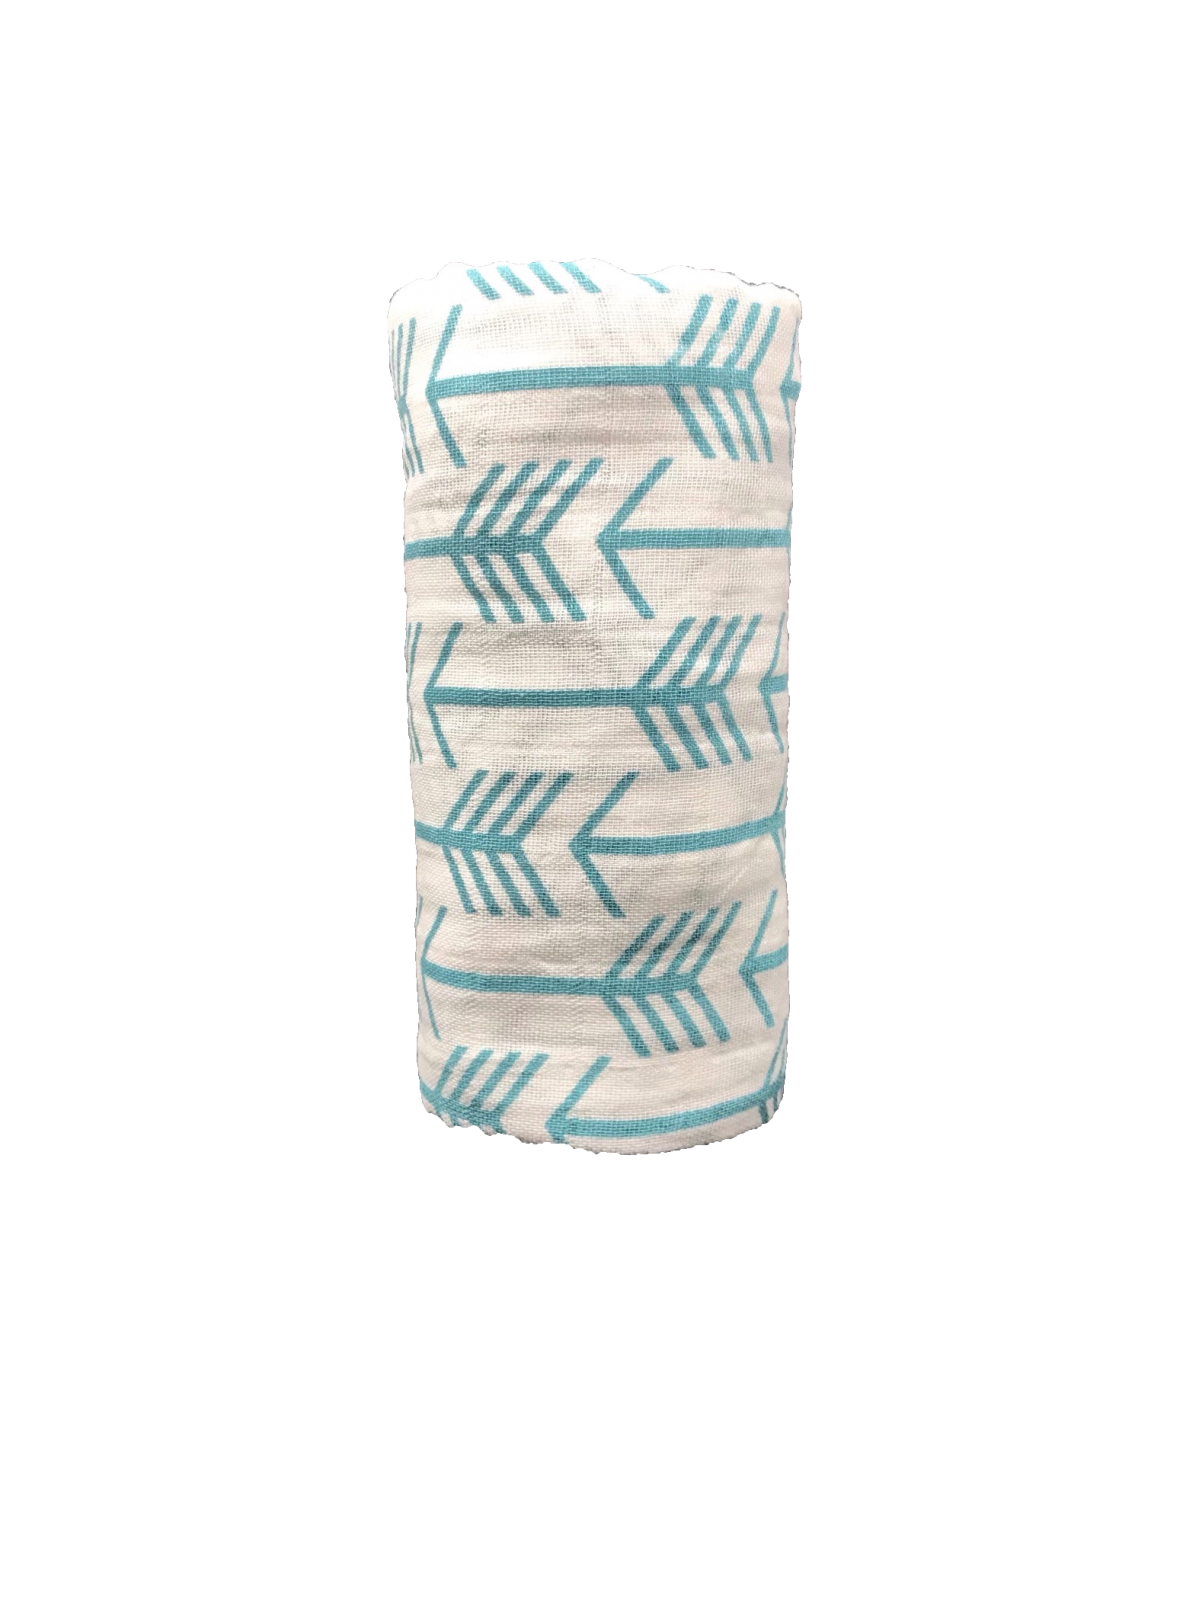 Arrows Teal Swaddle